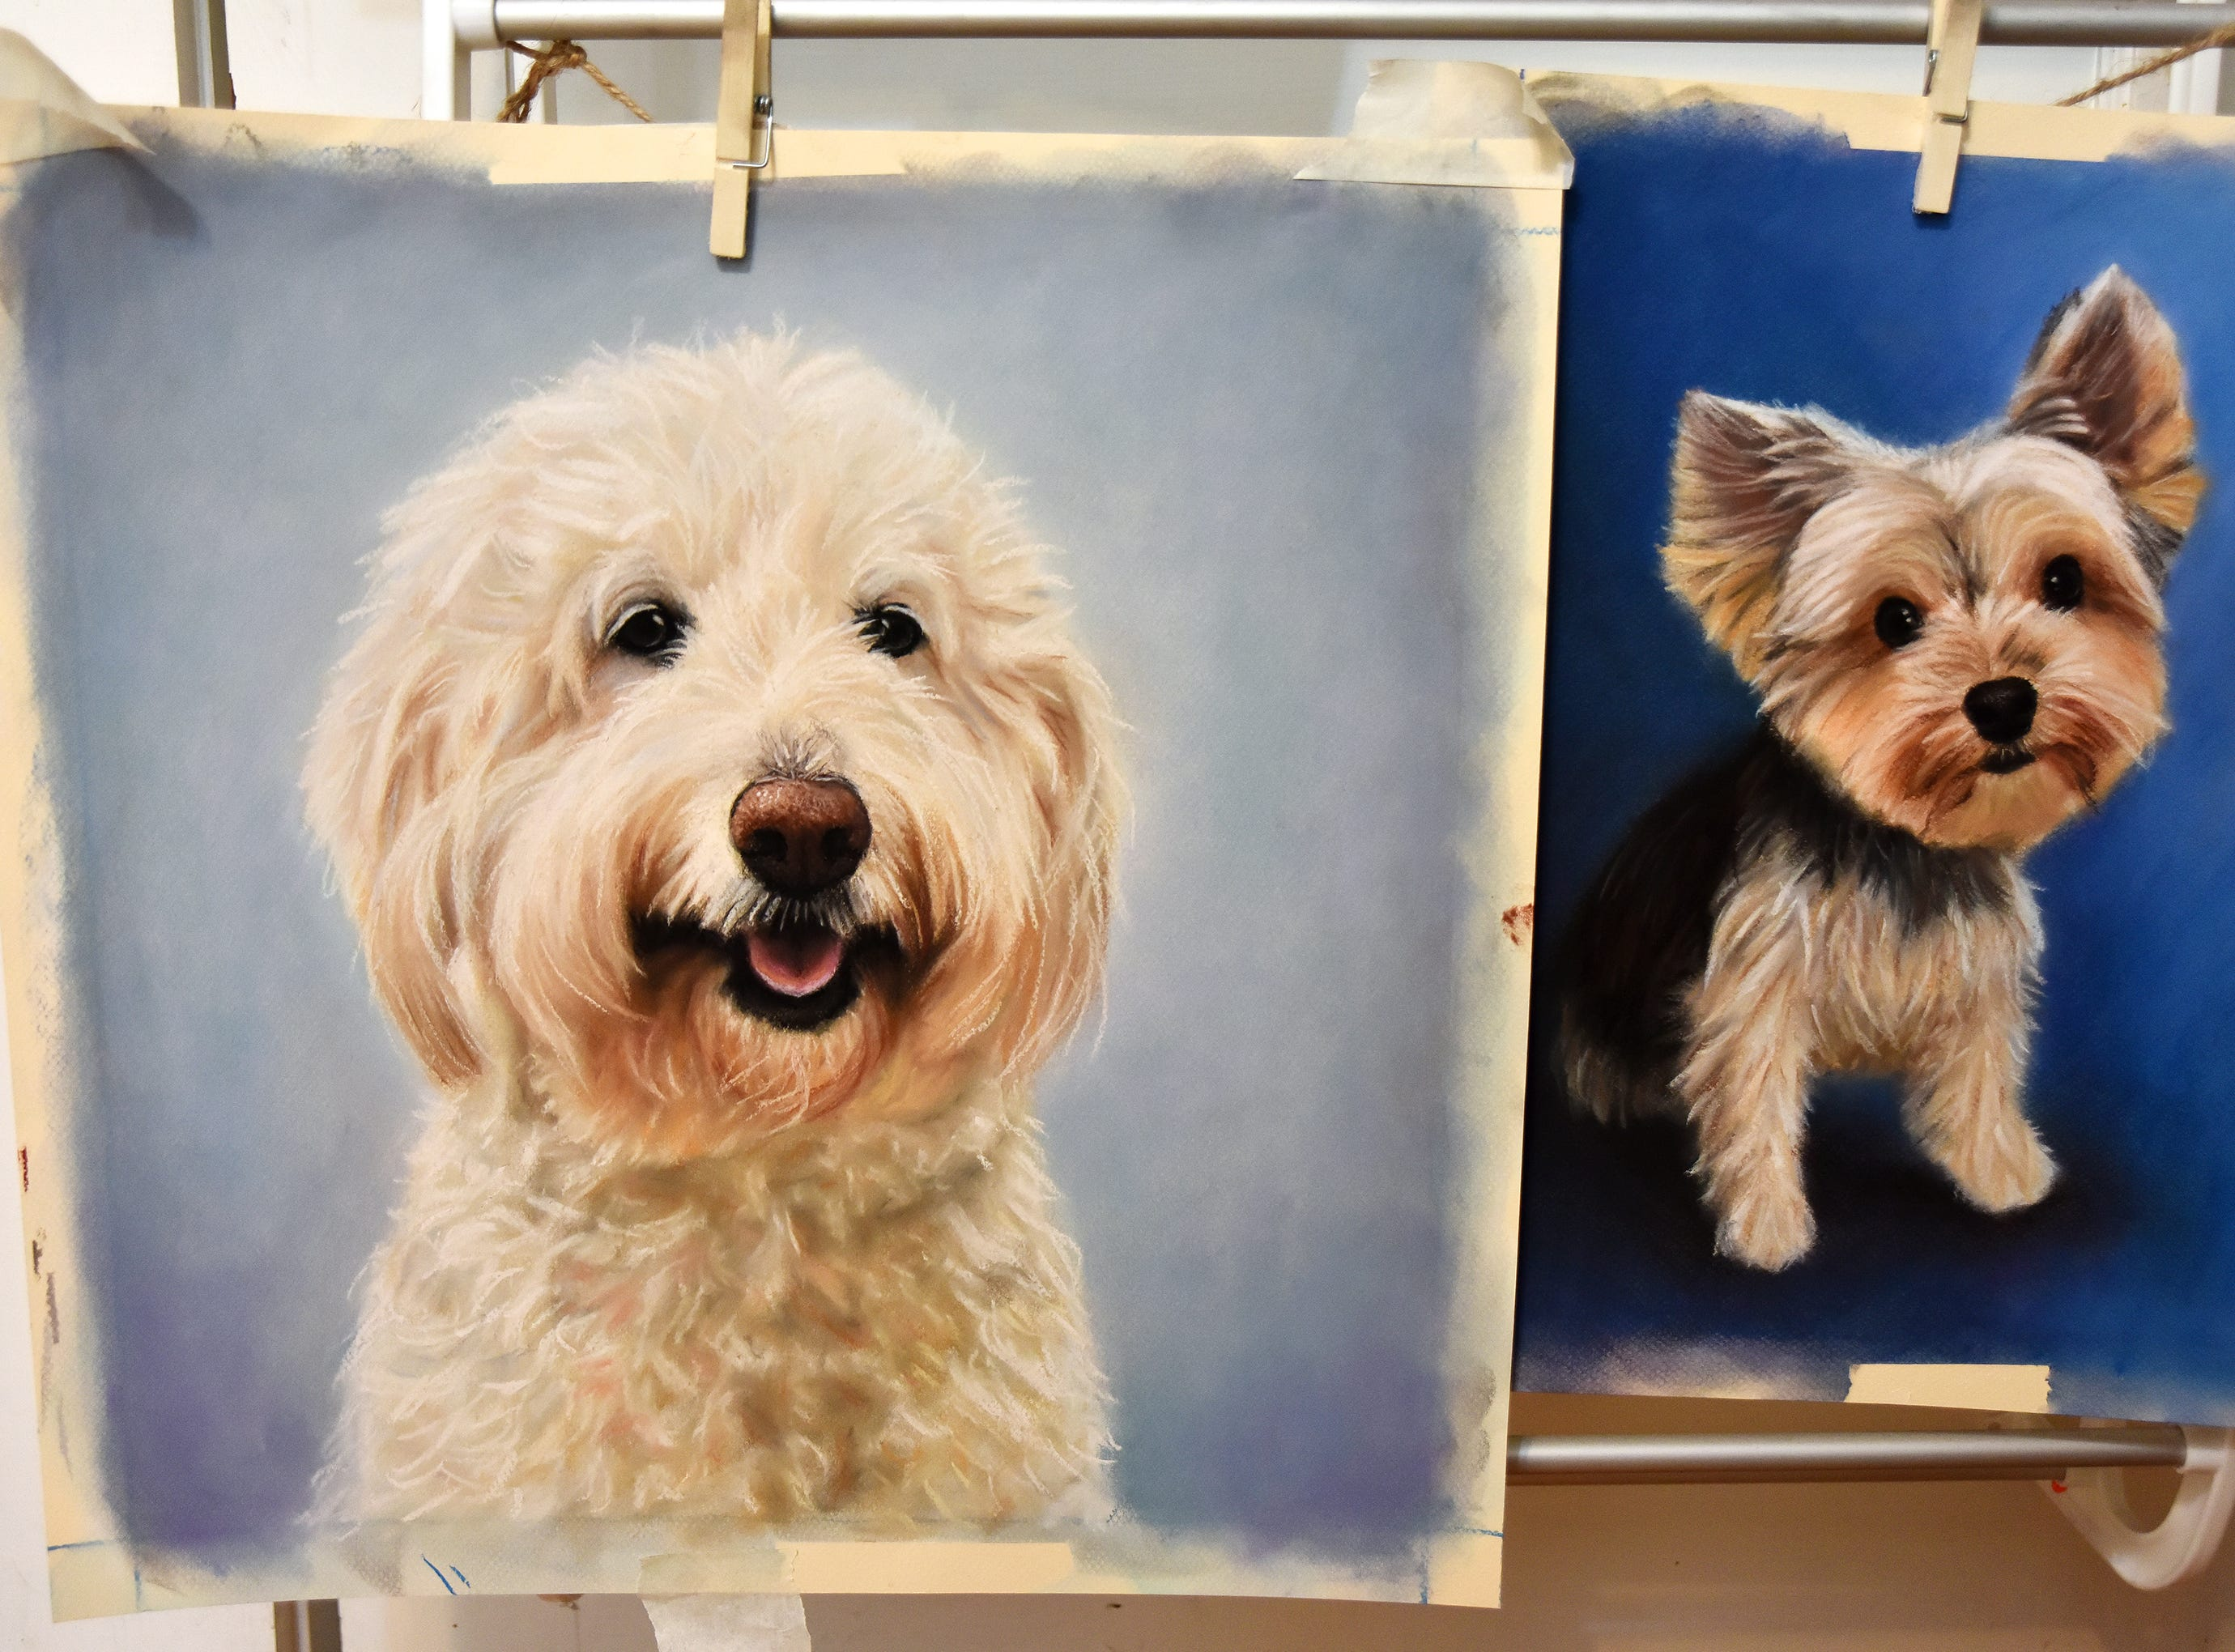 Finished pet portraits by Olivia White hang at her home studio in Anderson